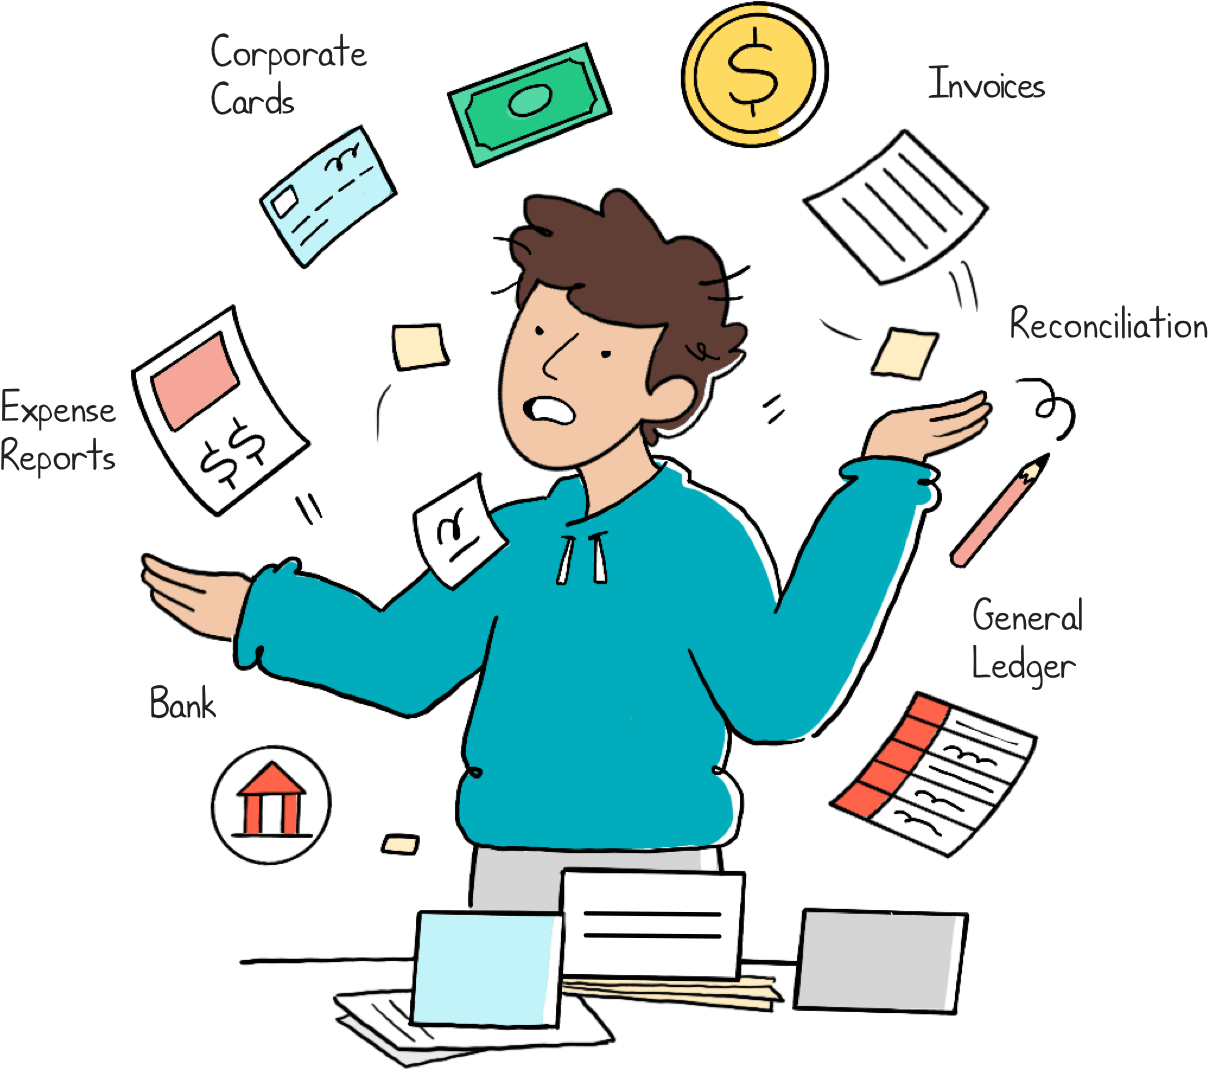 A finance executive juggles spend processes across different systems, frustrated at the amount of effort it takes to get control over spend